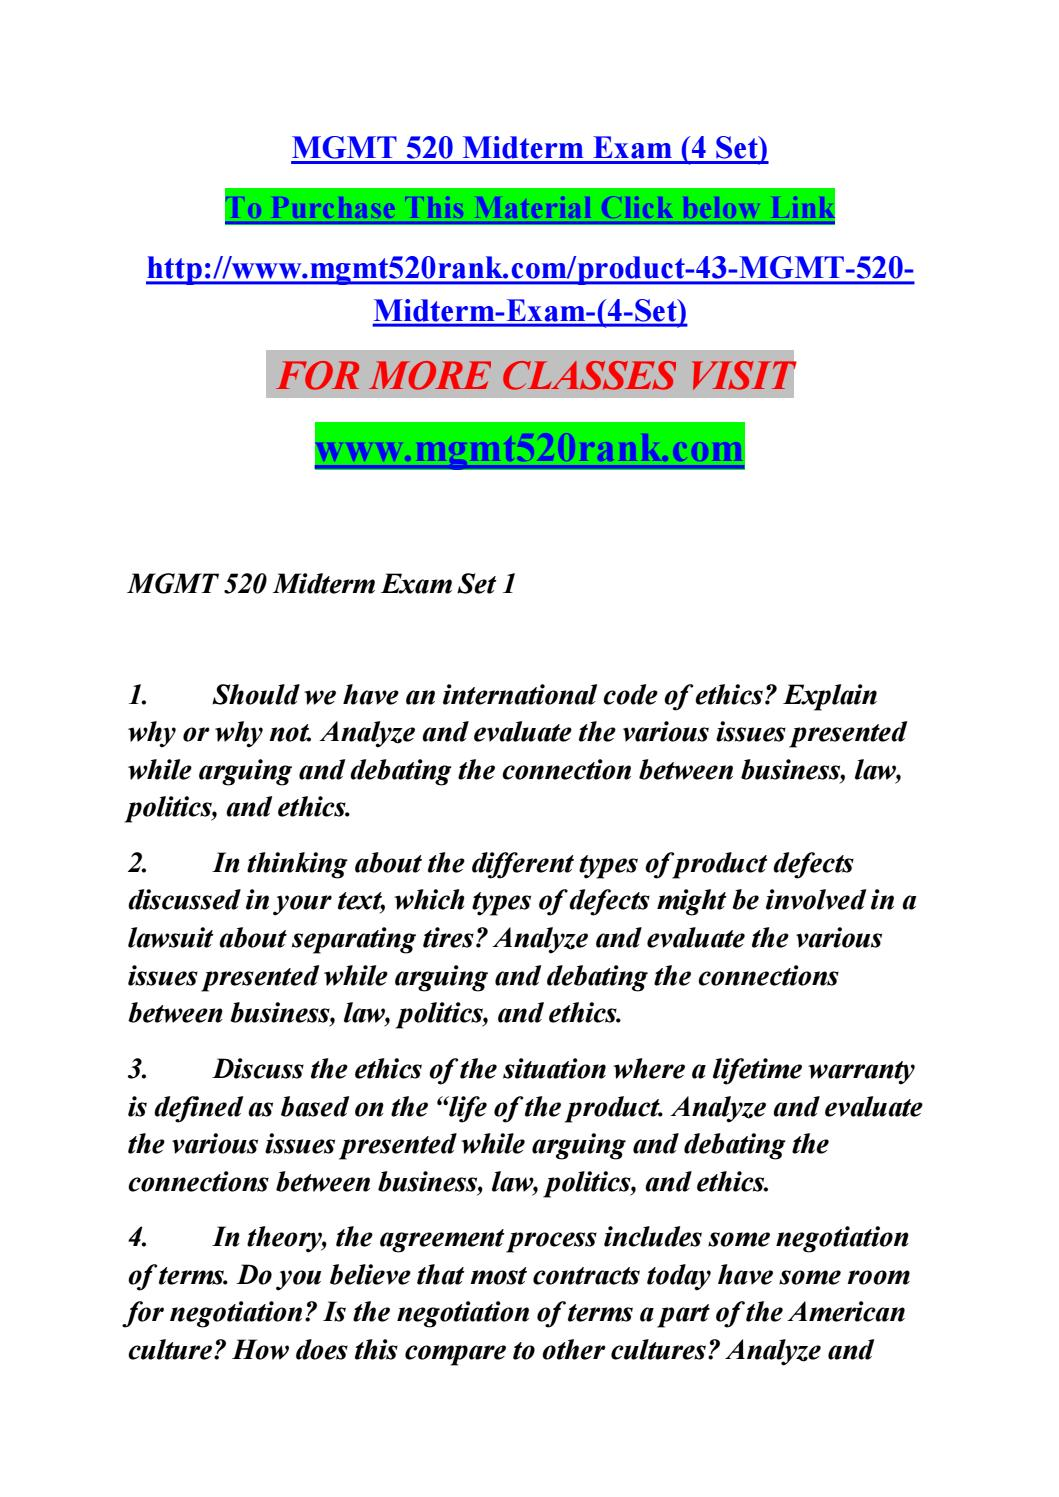 mgmt 520 midterm exam legal political and Mgmt/520 midterm exam (legal, political and ethical dimensions of business) mgmt/520 midterm exam (legal, political and ethical dimensions of business)  (toc a) if congress passed a law making an activity specifically legal, would that automatically make it ethical why or why not analyze and evaluate the various issues presented while.